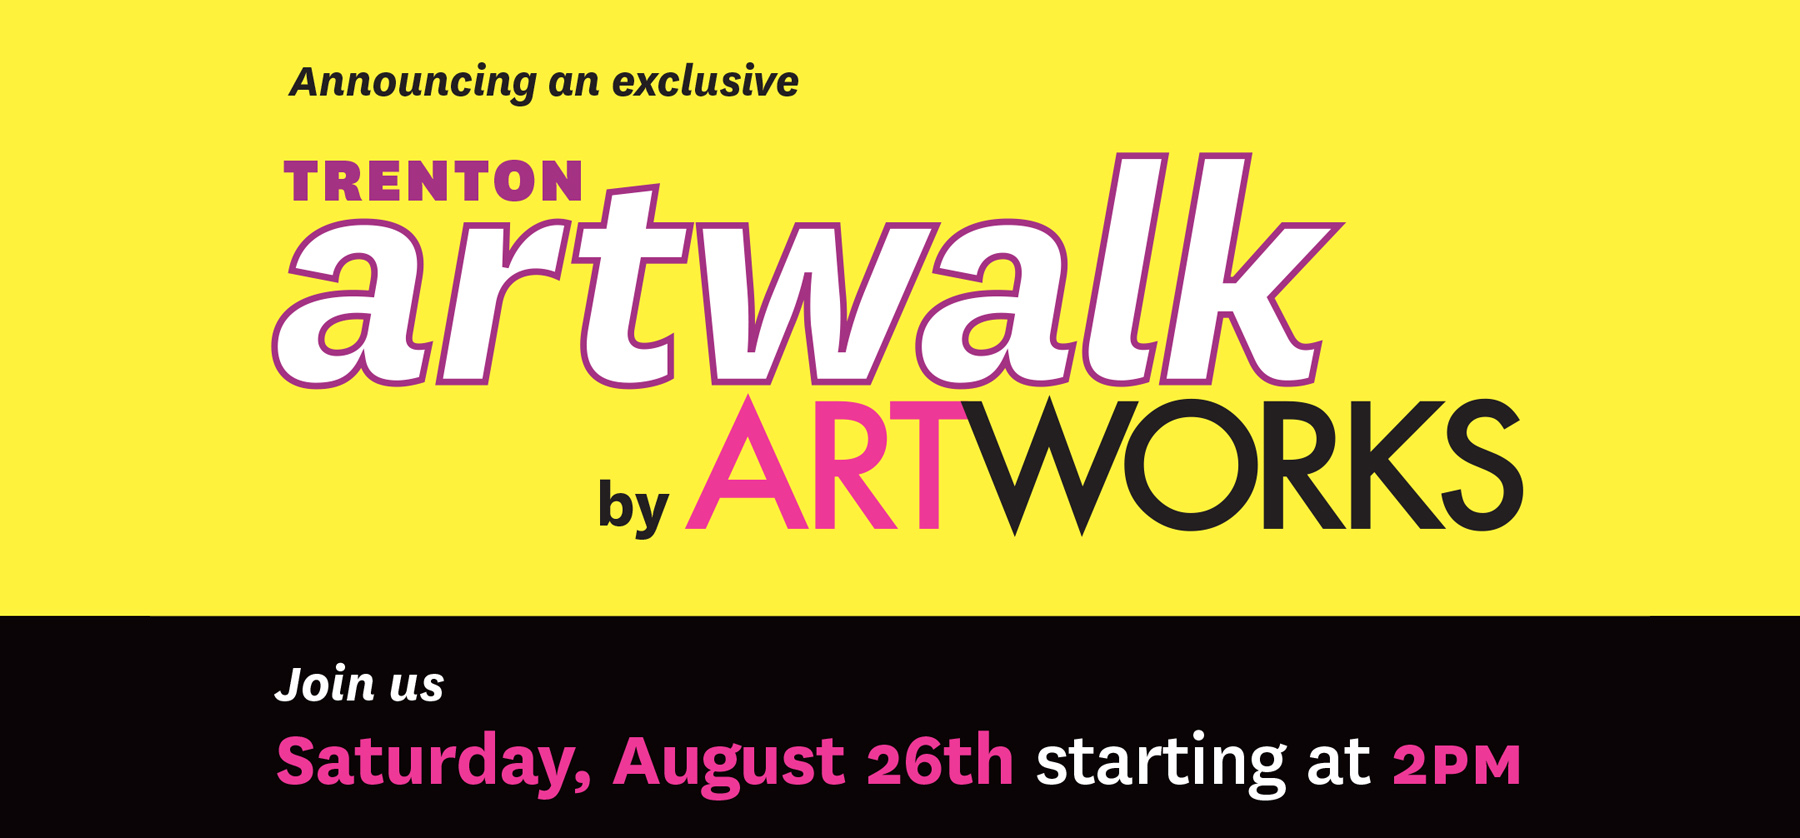 TRENTON ARTWALK